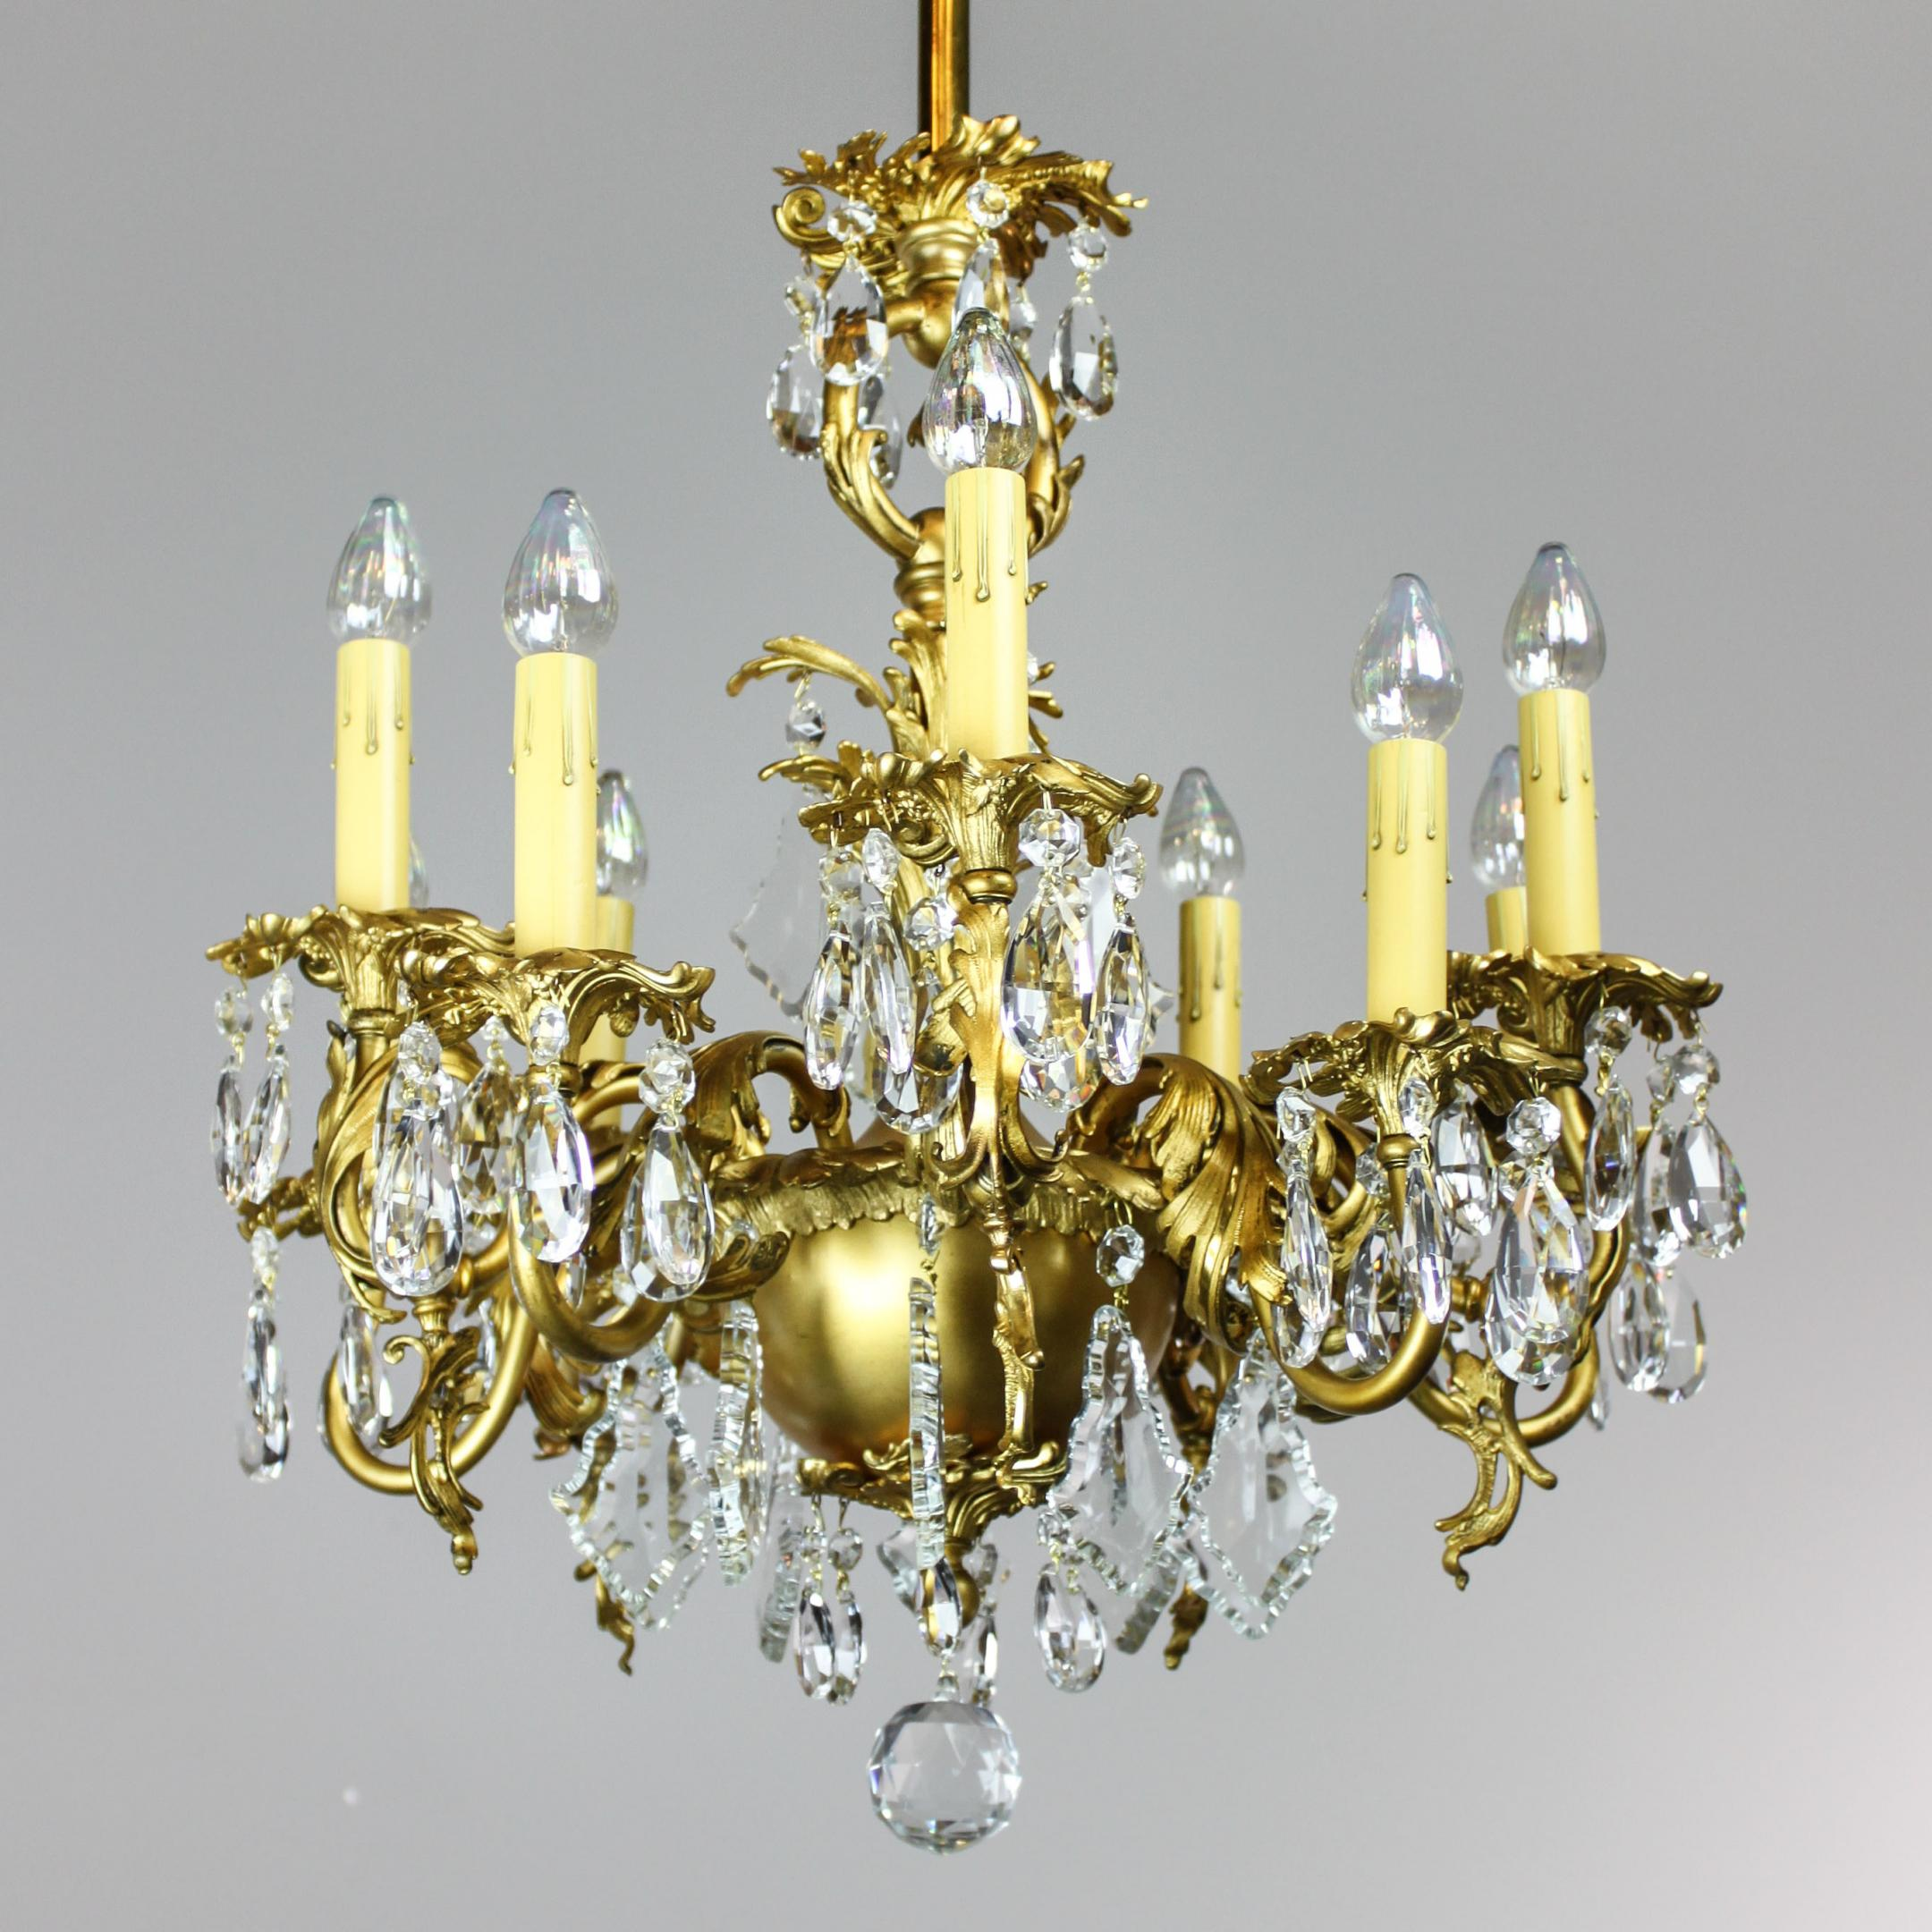 Gold Plated Rococo 1910 Converted Gas Chandelier 9 Light Modernism